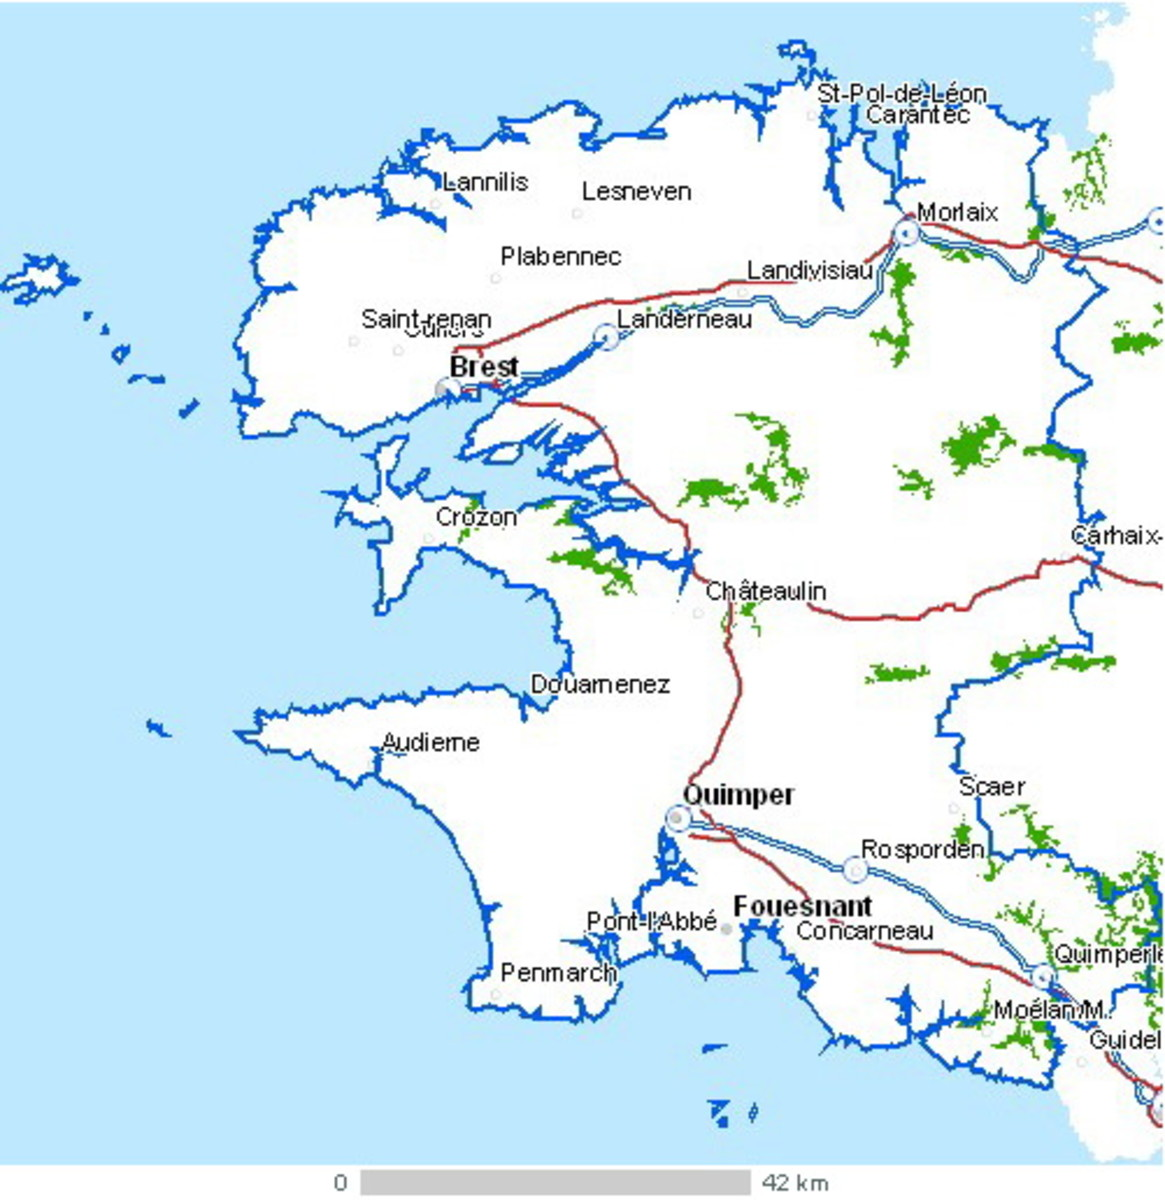 Finistere, Britanny, France: Huelgoat is just north of Carhaix (middle right)